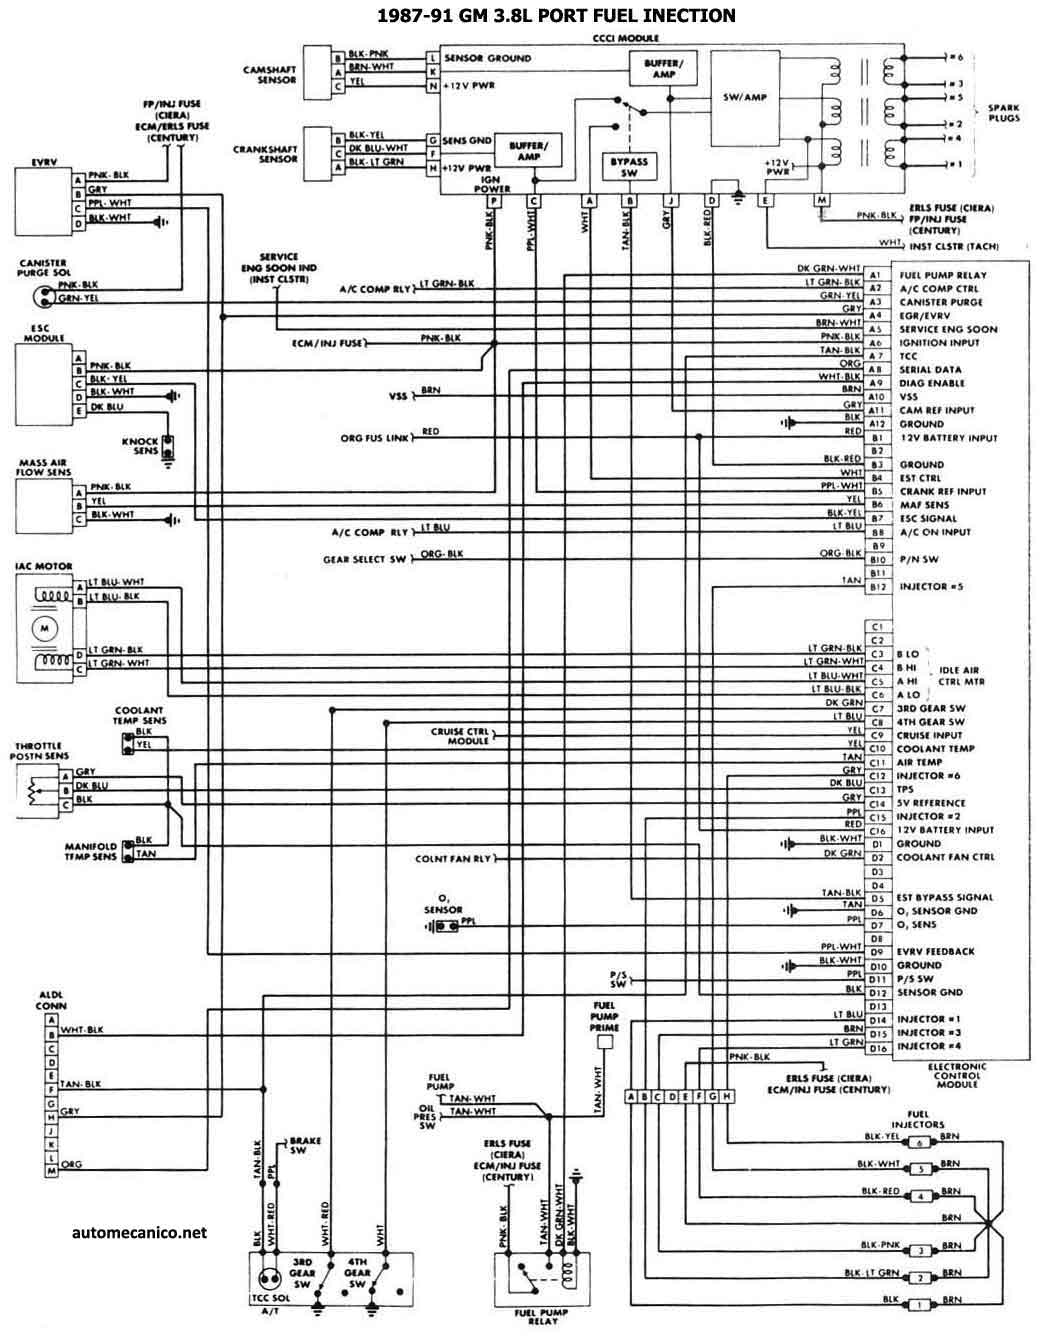 tags: #image of 2 8 v 6 ford engine#75 ford 2 8 v6 performance mods#84  chevy 2 8 v6 parts diagram#picture of chevy 2 8 v6 distributor#chevy 2 8 v6